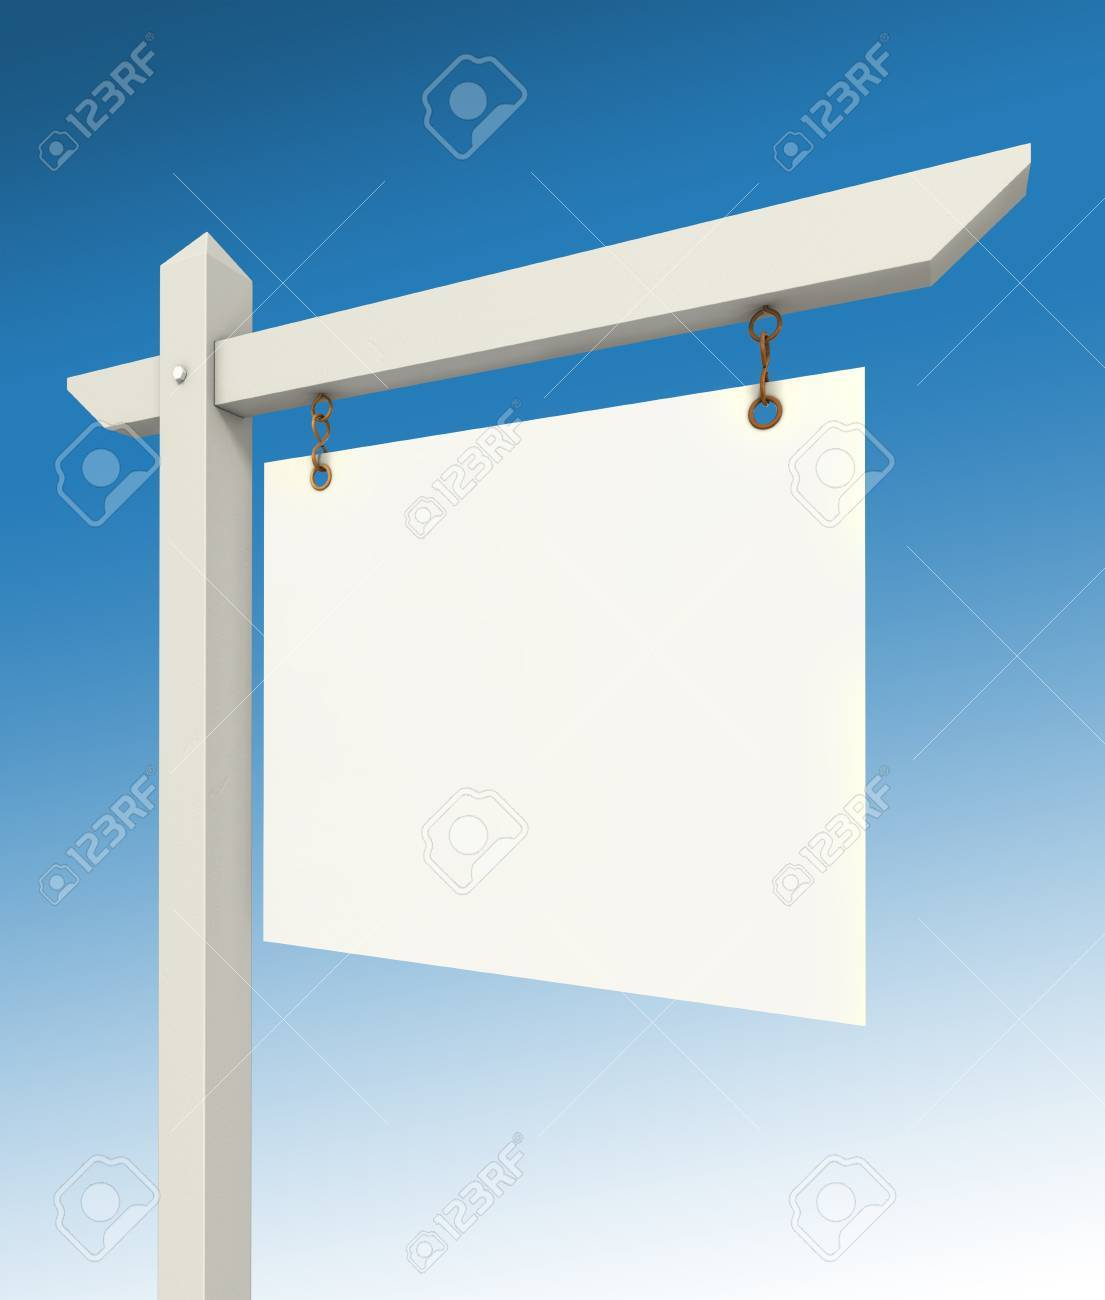 real estate empty sign on blue background Stock Photo - 13012737